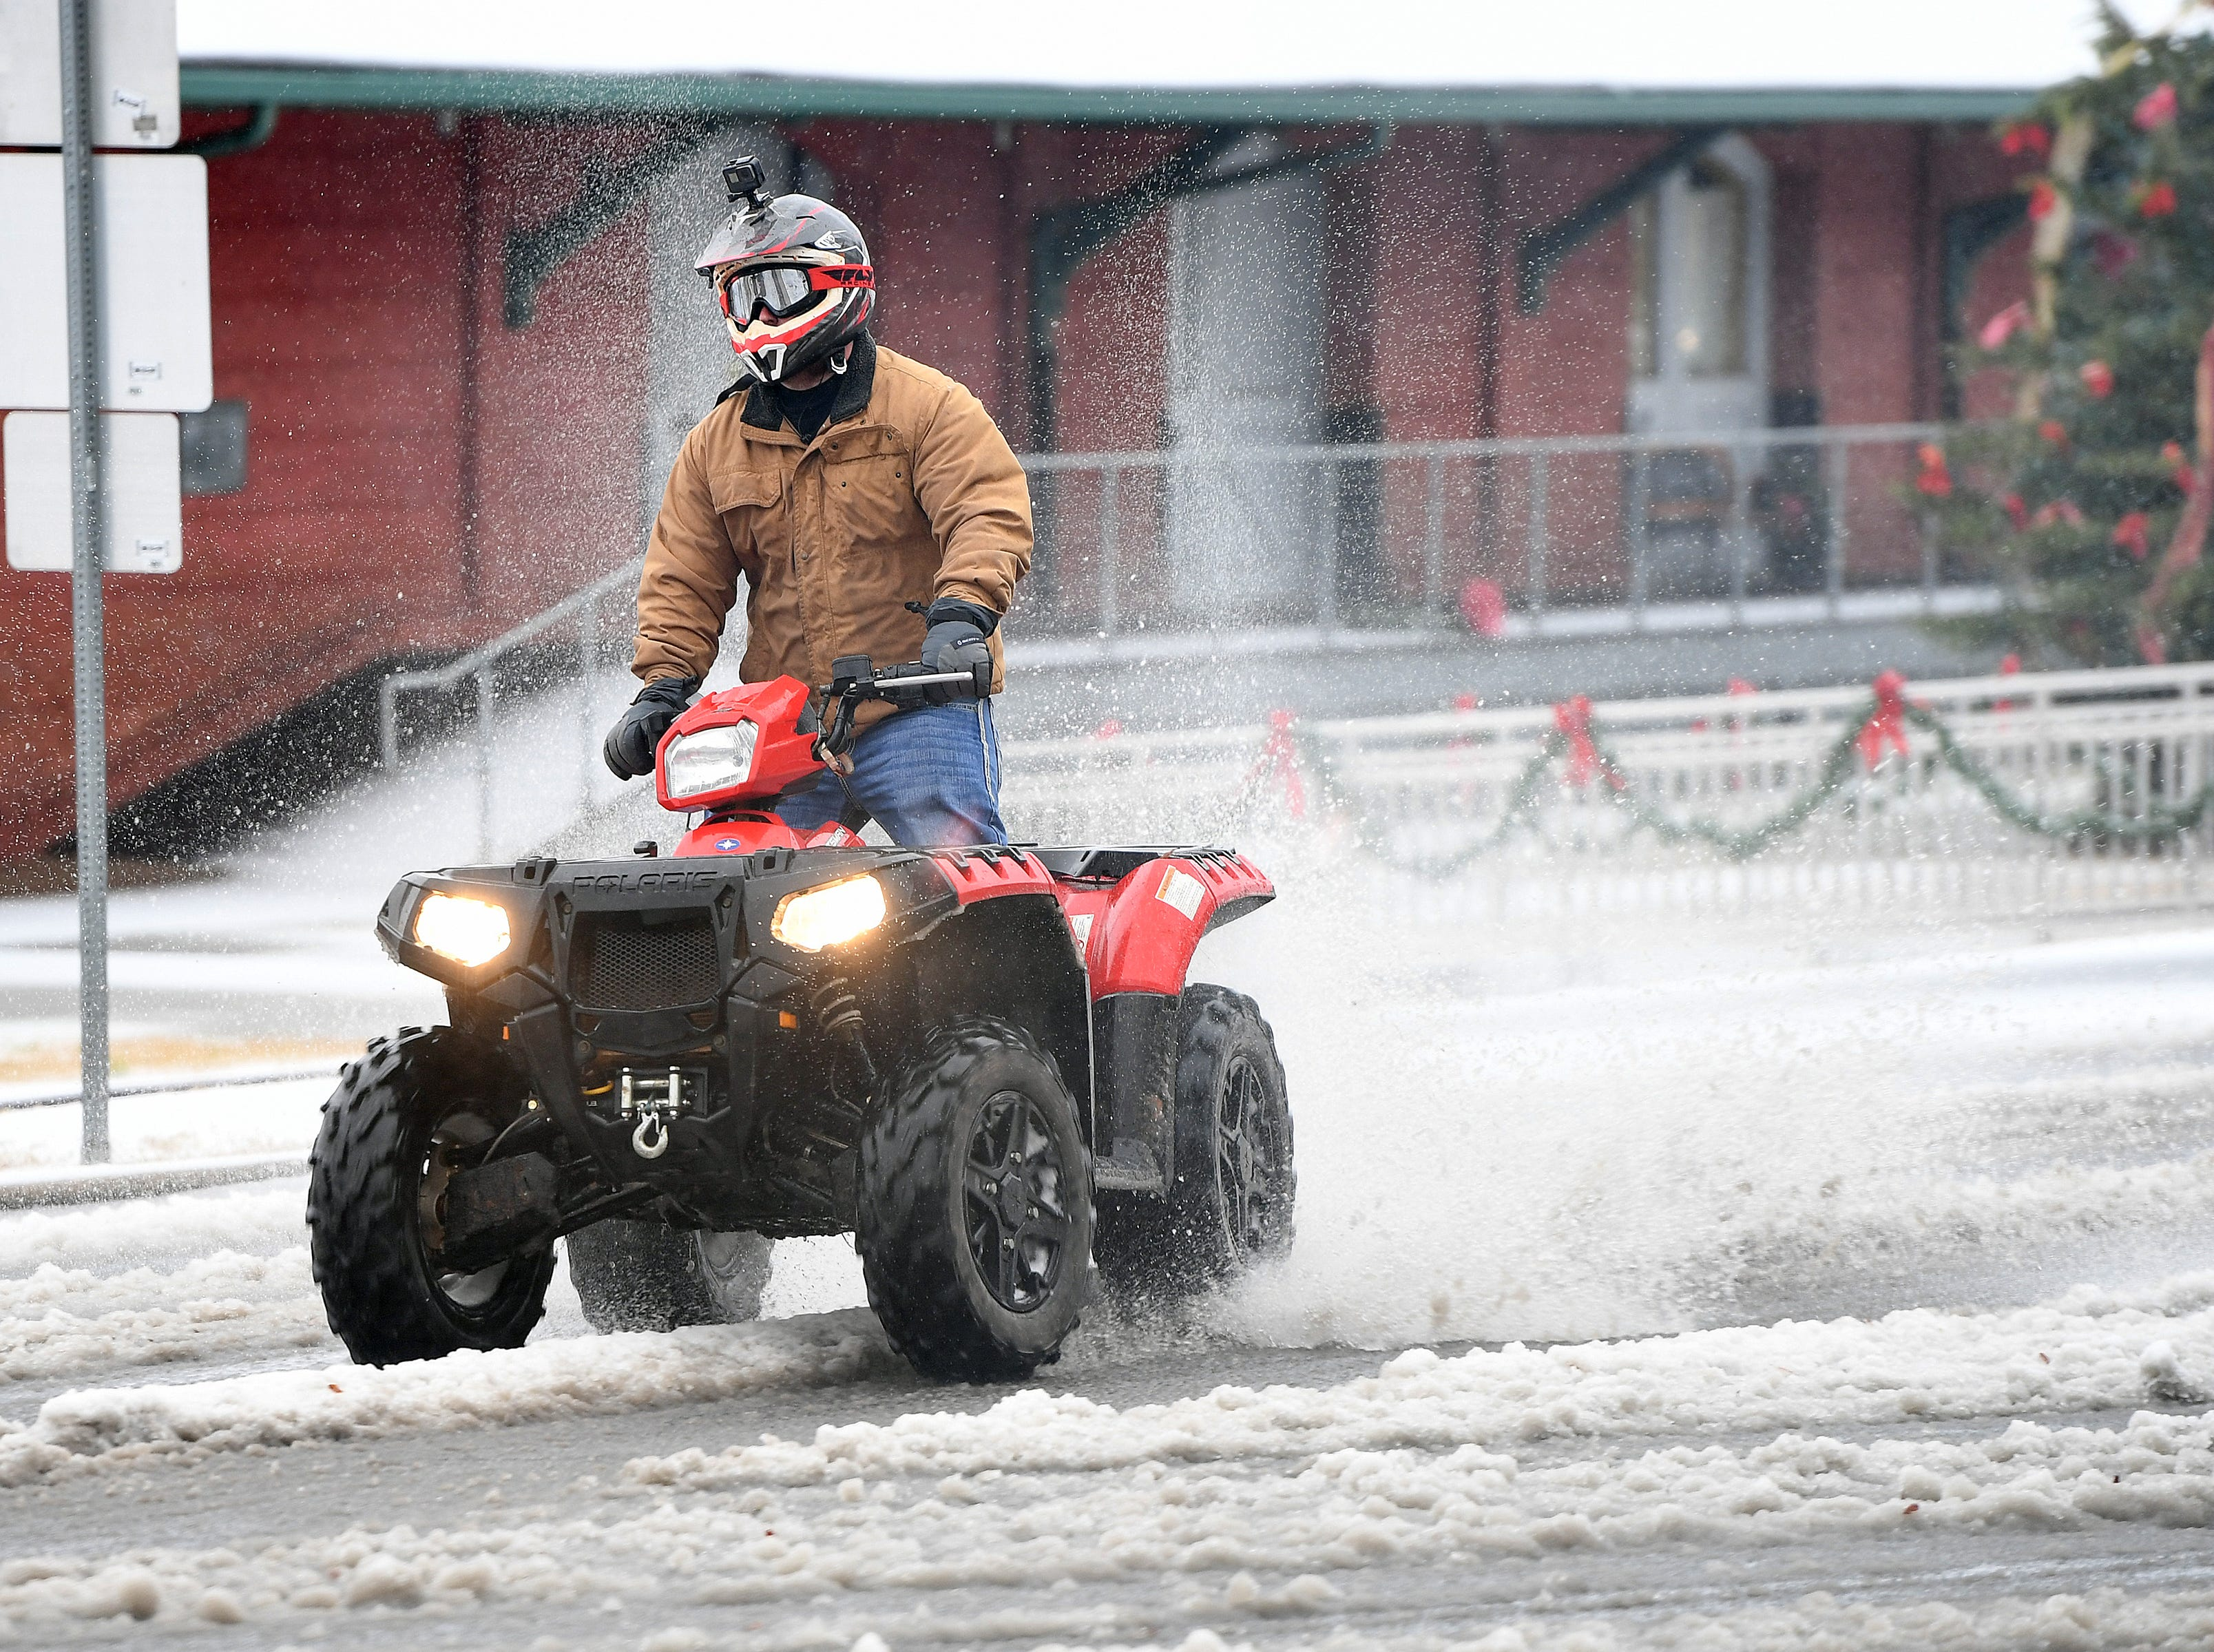 A four wheeler is driven on Main Street in downtown Belton after a layer of sleet fell early Sunday December 9, 2018.